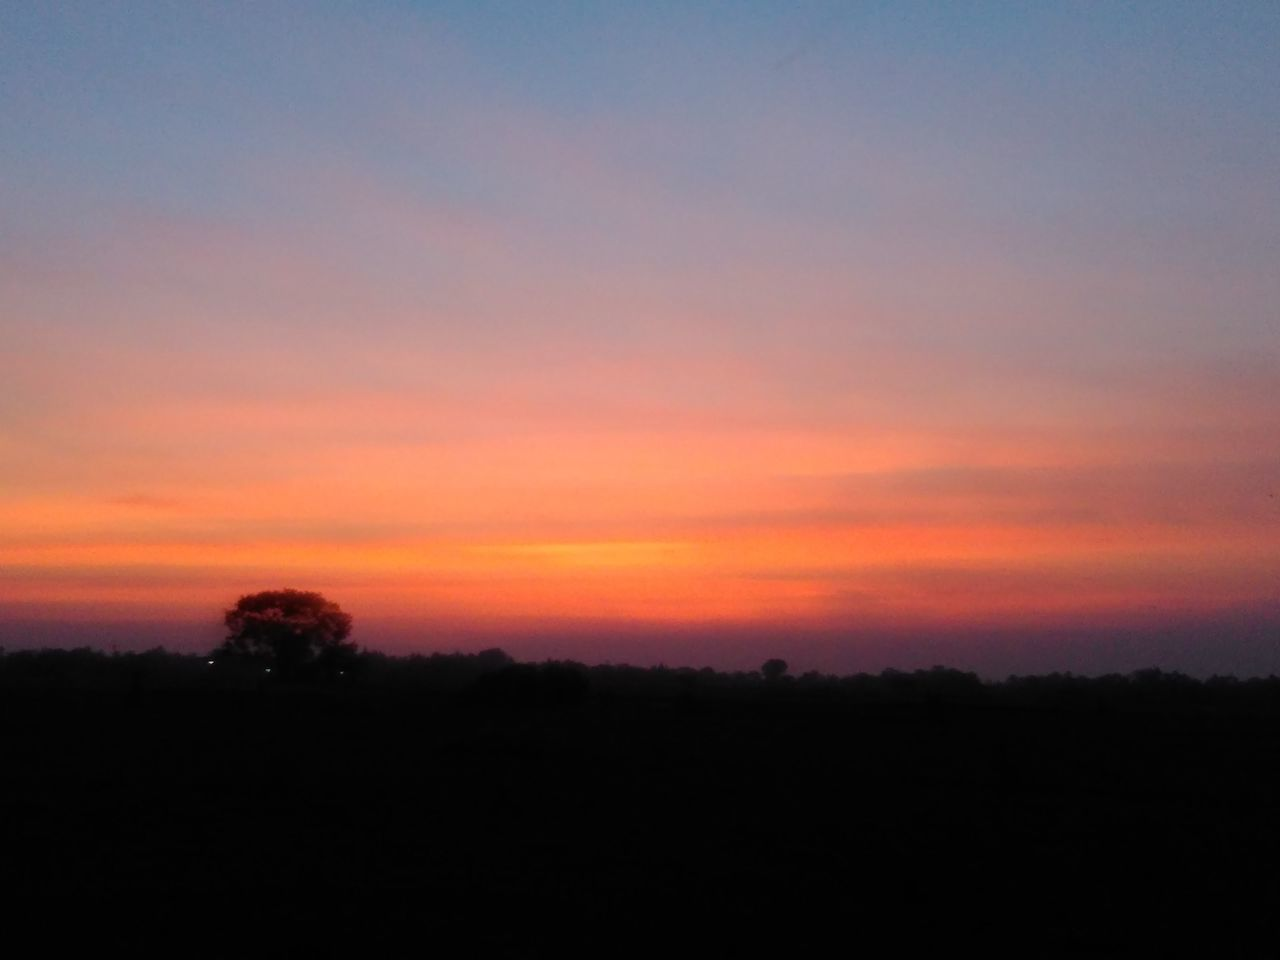 sunset, silhouette, nature, scenics, beauty in nature, tranquil scene, tranquility, orange color, sky, landscape, idyllic, no people, outdoors, tree